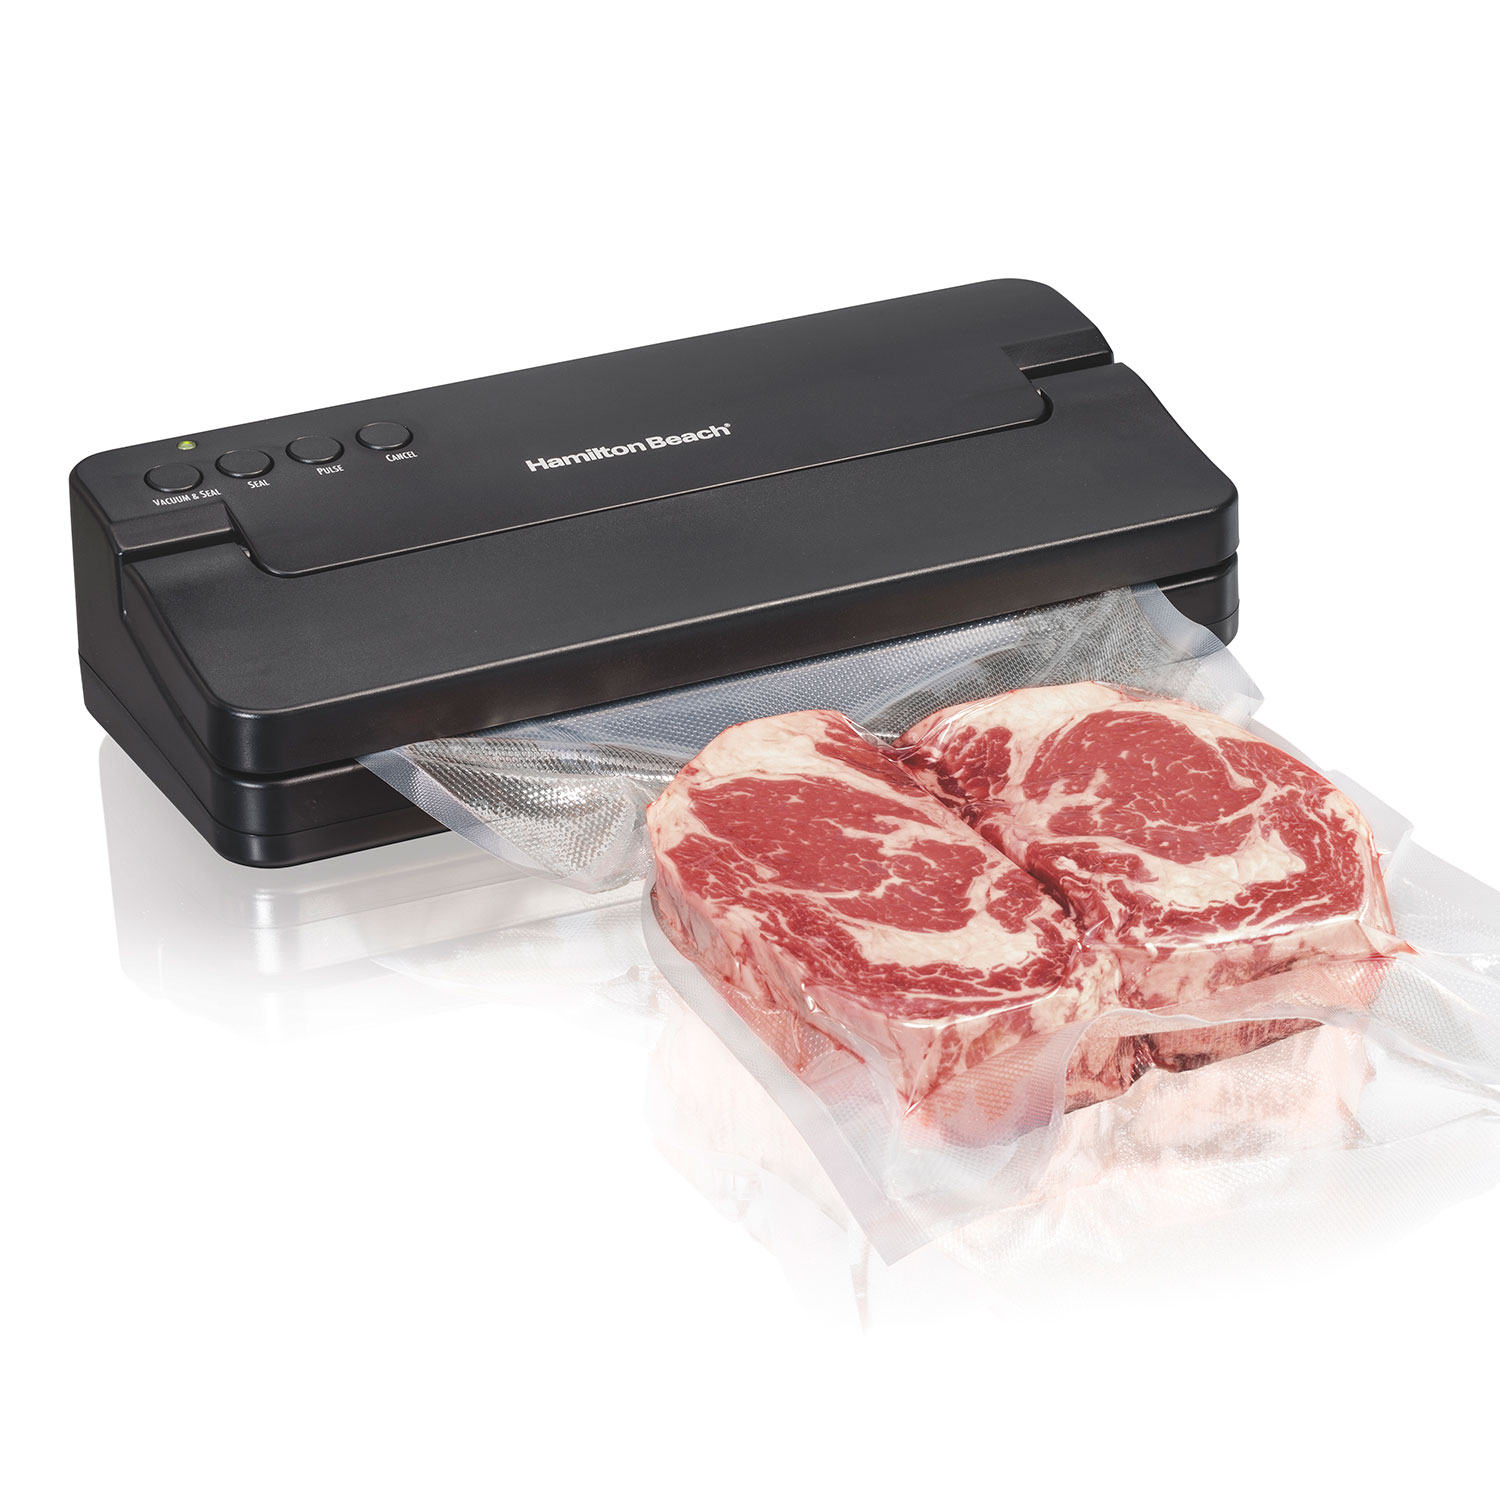 NutriFresh™ Vacuum Sealer (78217)